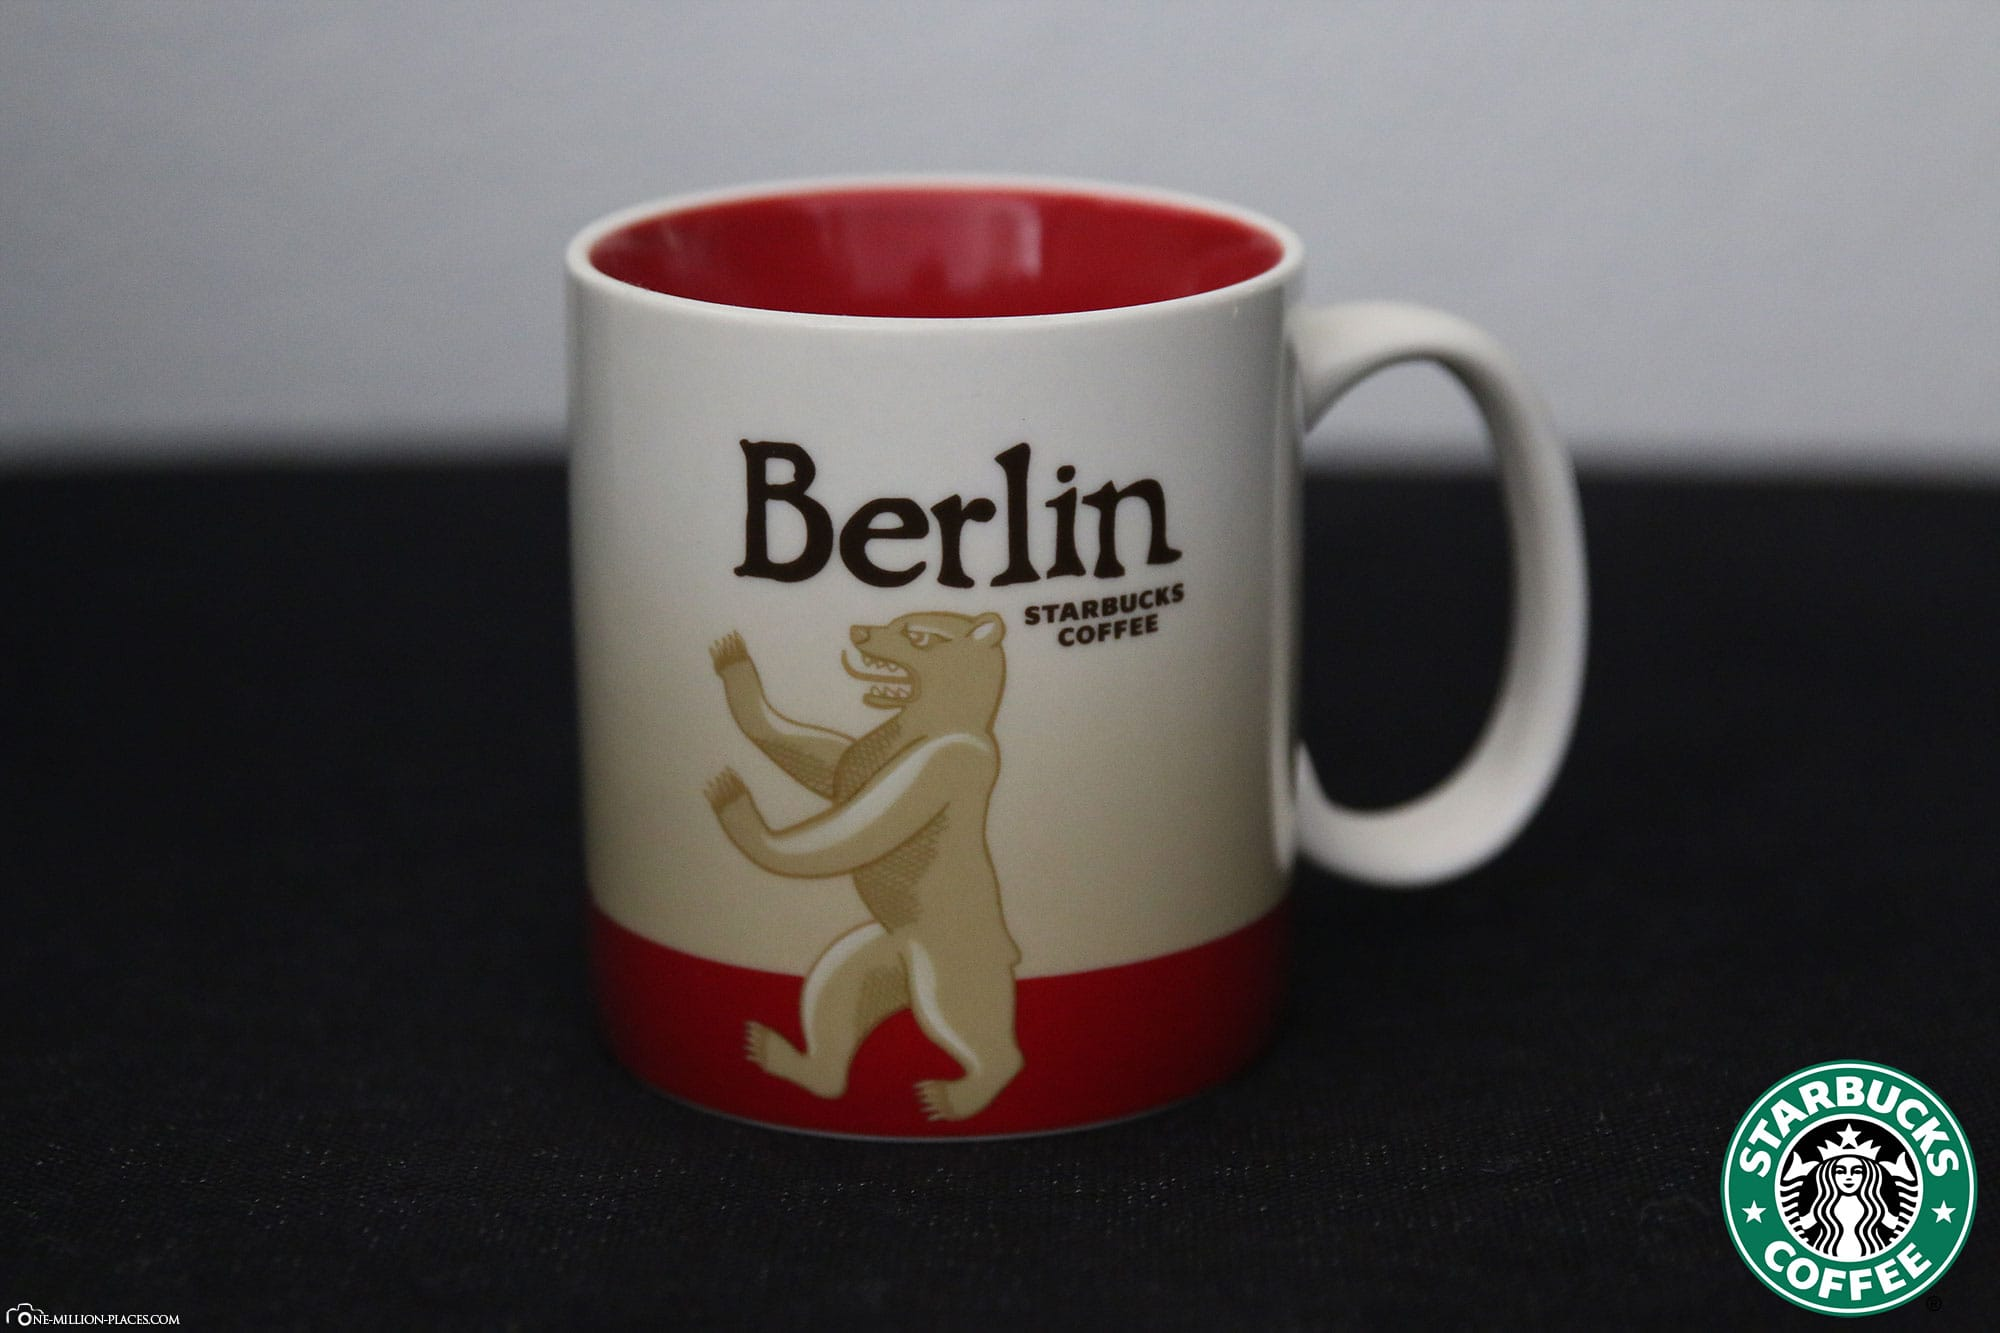 Berlin, Starbucks Cup, Global Icon Series, City Mugs, Collection, Germany, Travelreport